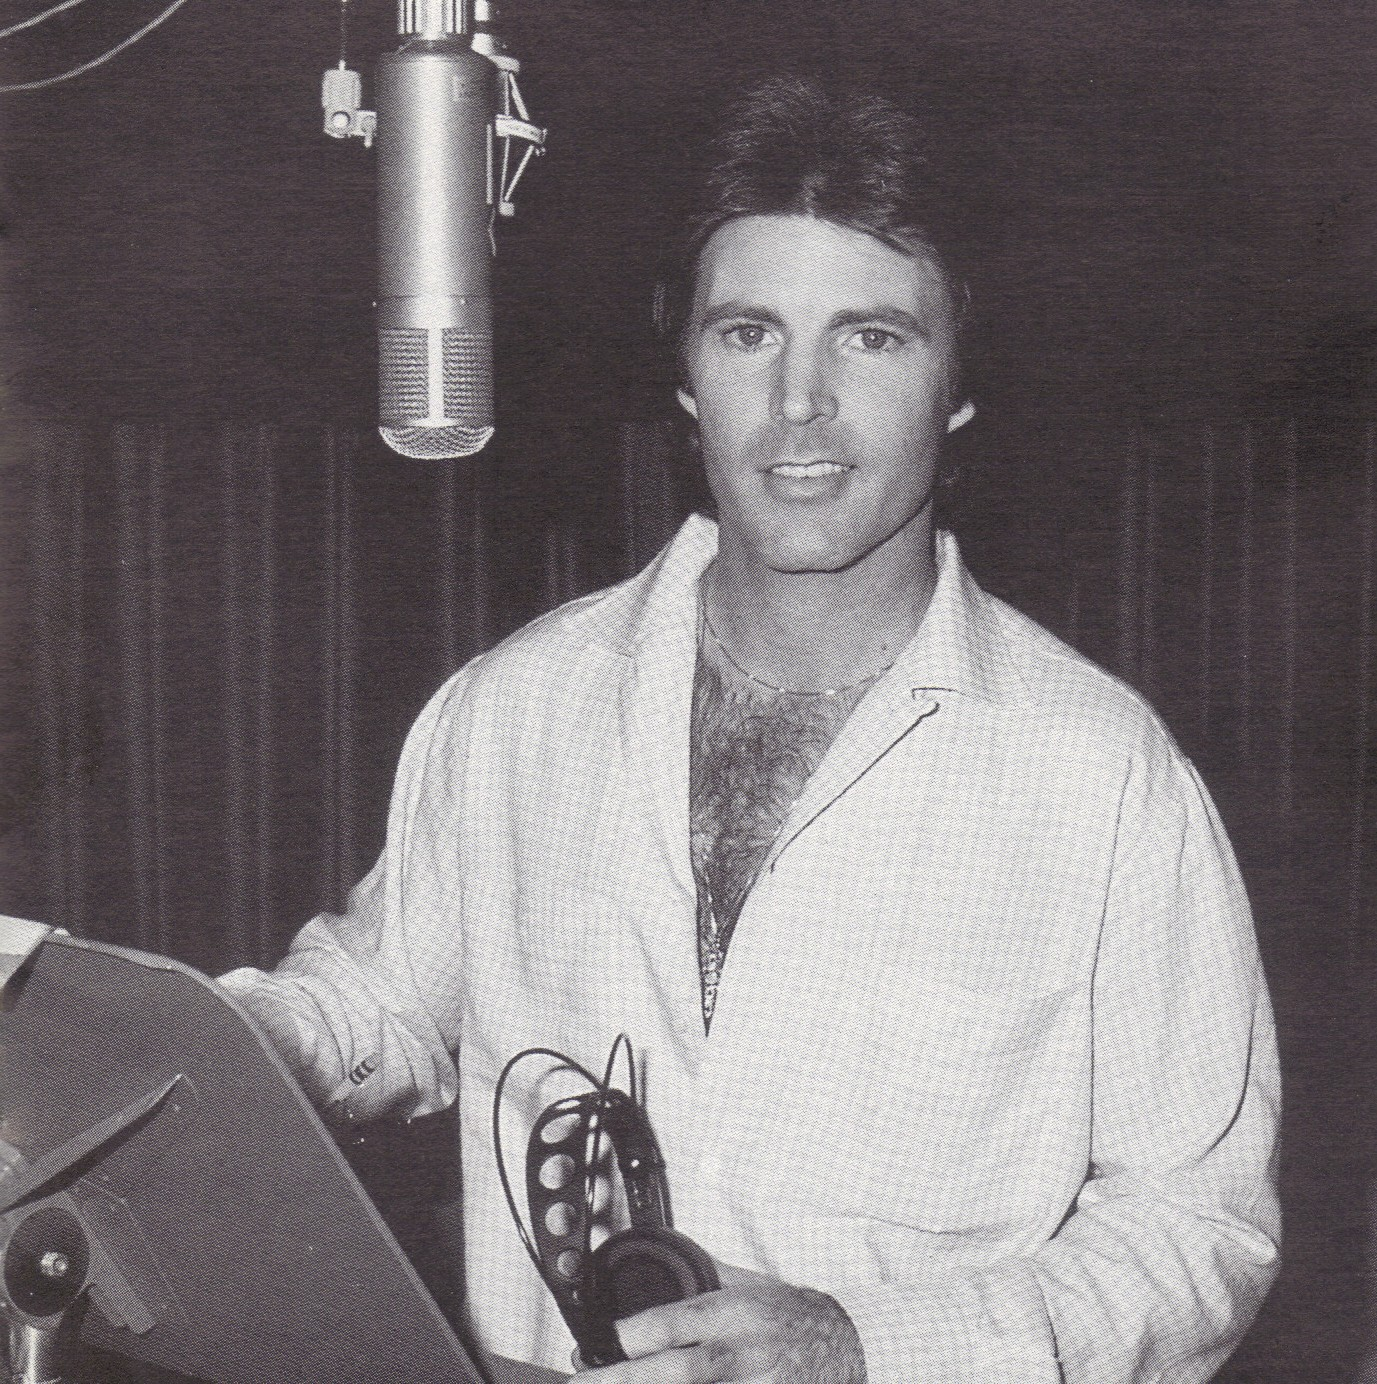 Rick Nelson was my dad the late audio icon is remembered by Mike Nelson